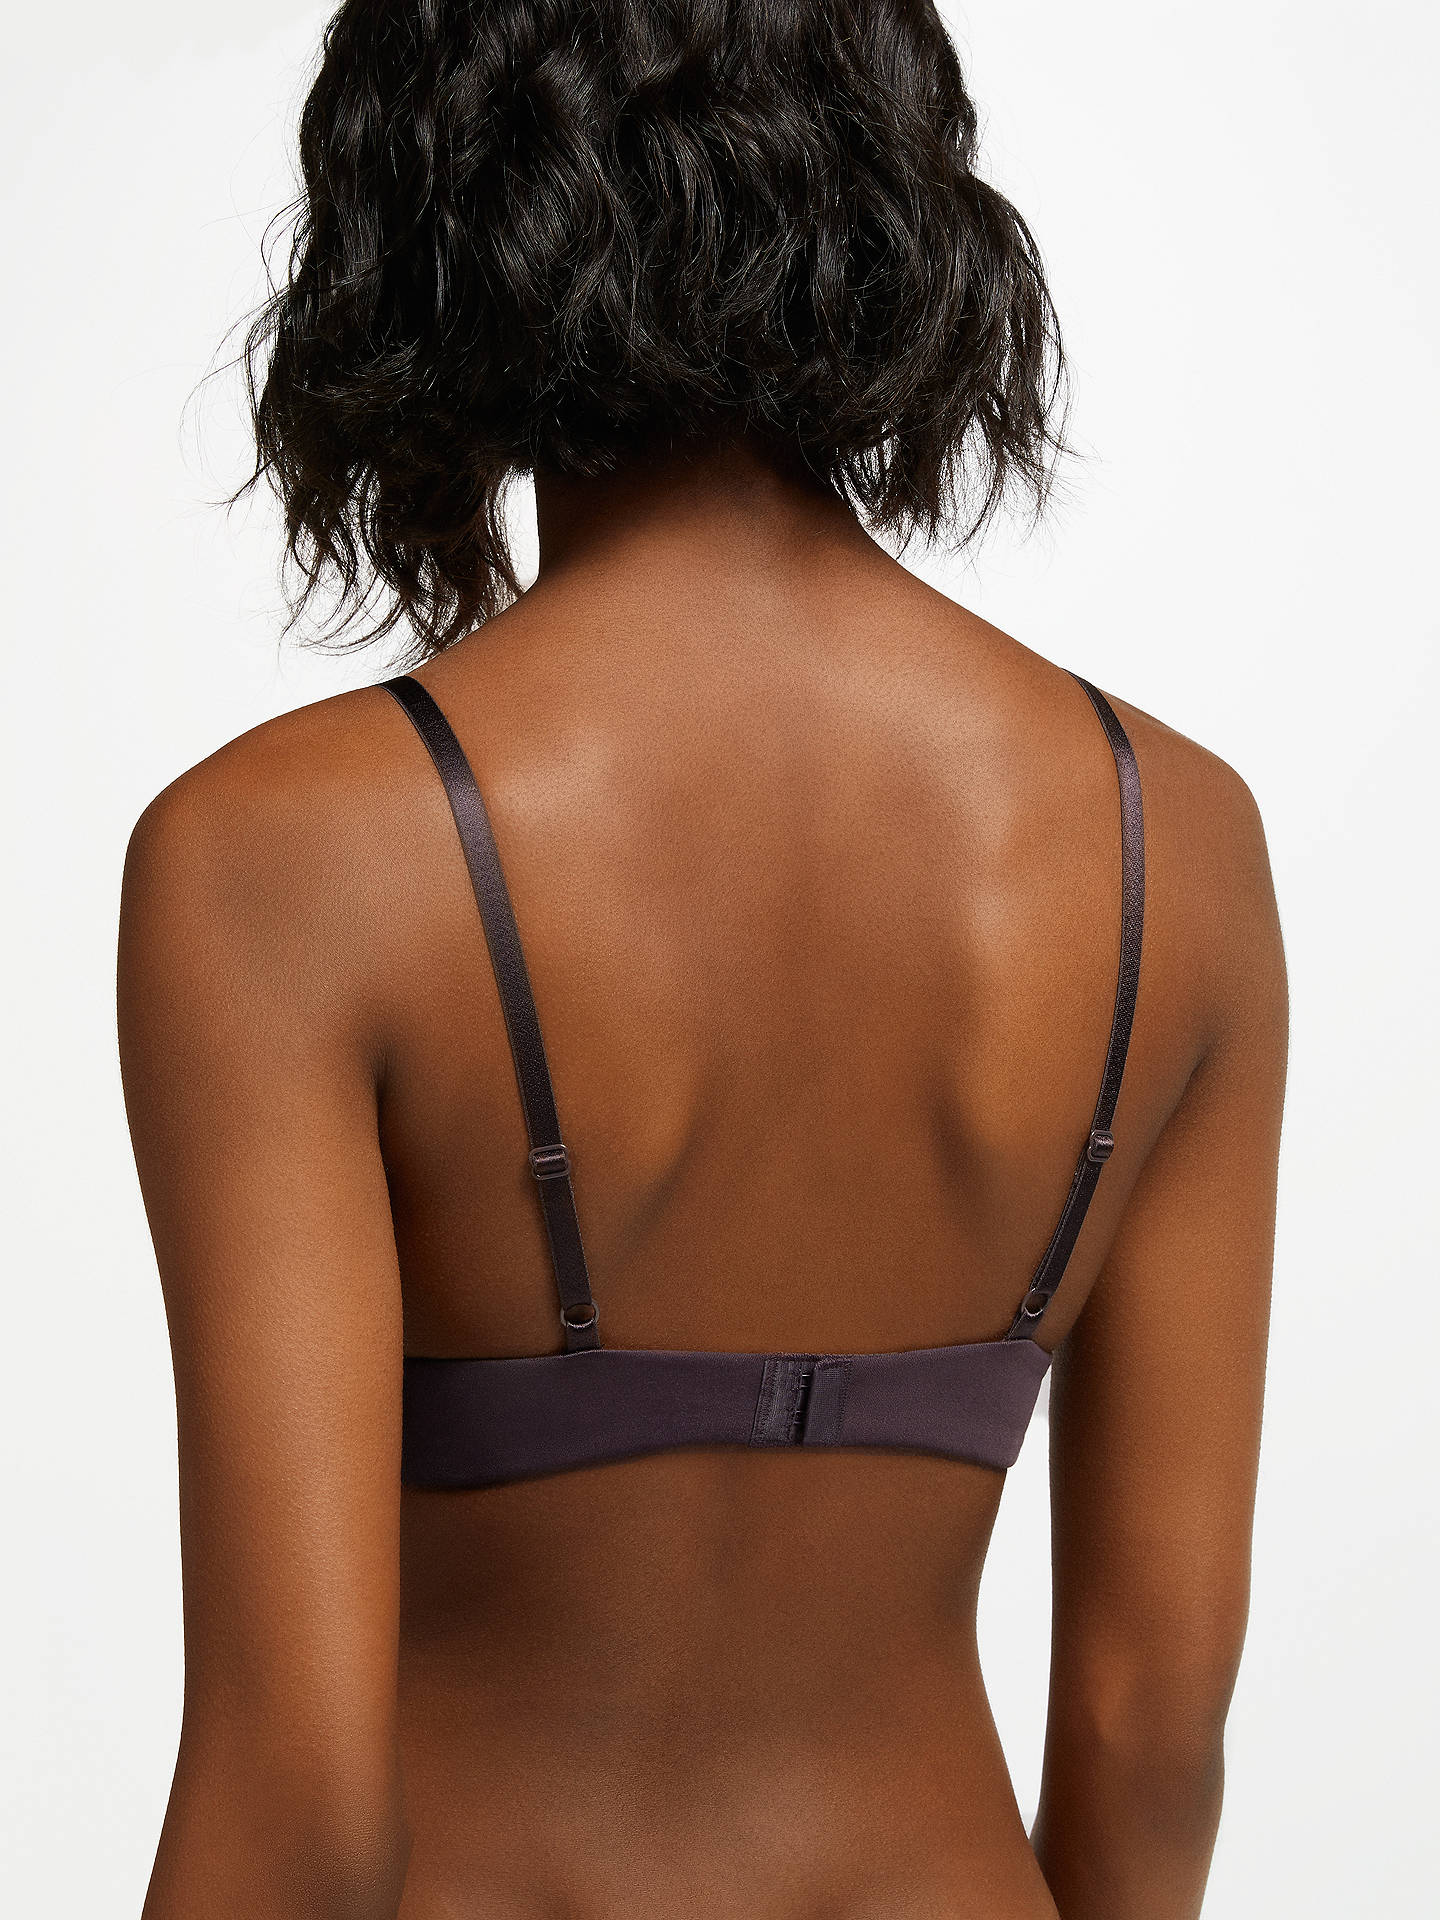 ad913453f46bf ... BuyJohn Lewis   Partners Willow Non-Wired Bra